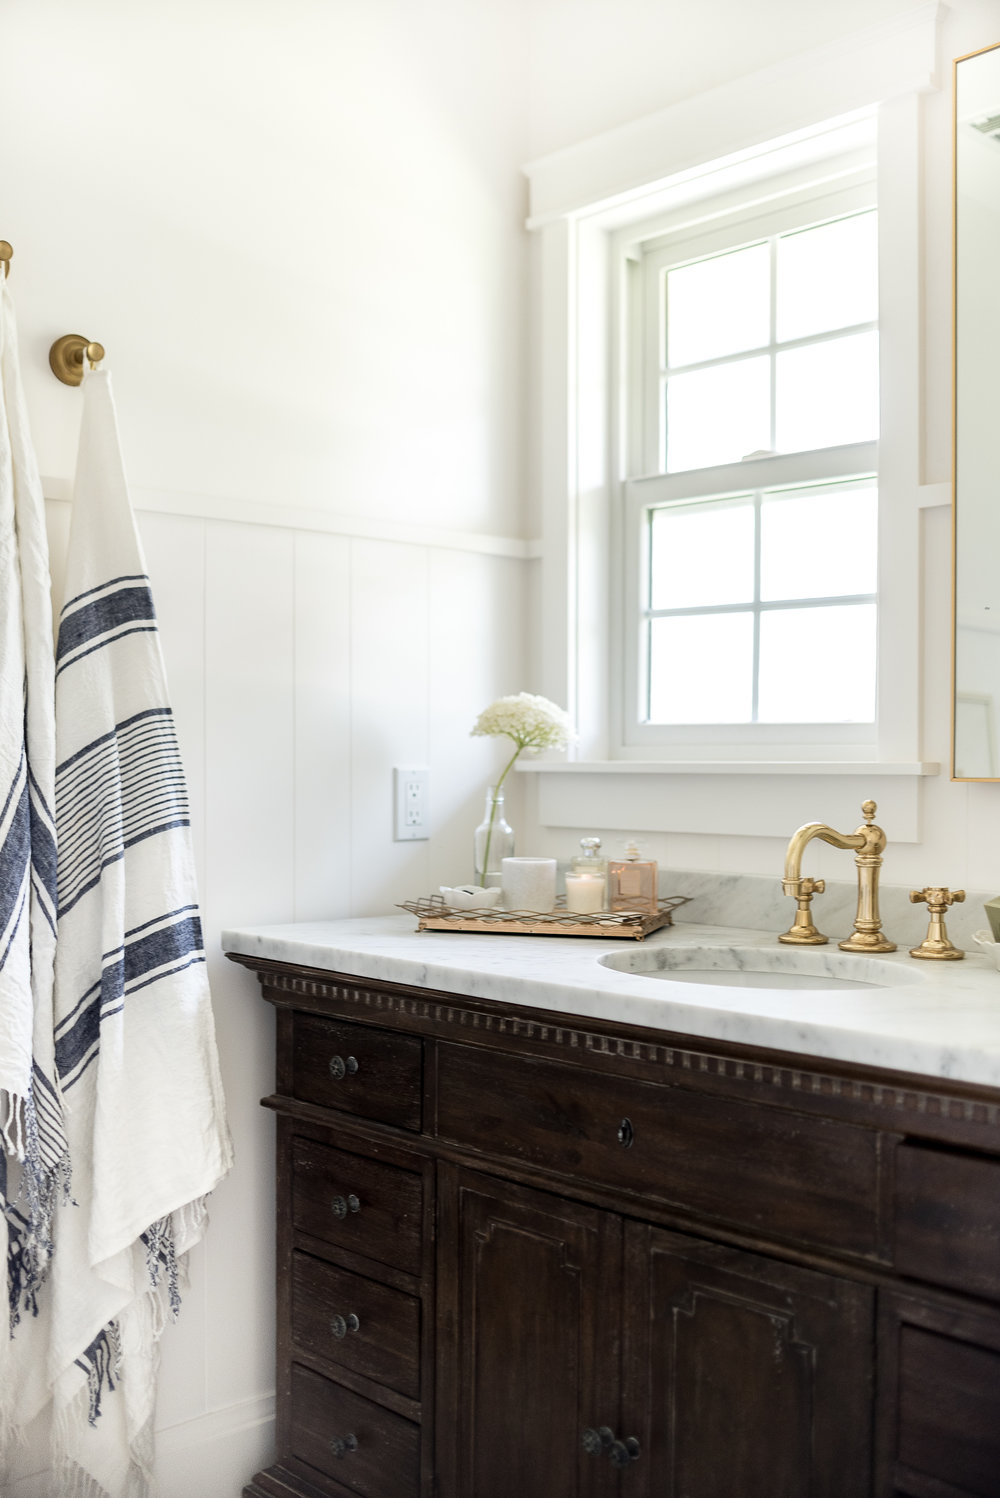 Guest bathroom remodel - We turned this 60s bathroom into a beautiful marble & brass retreat for our guests.